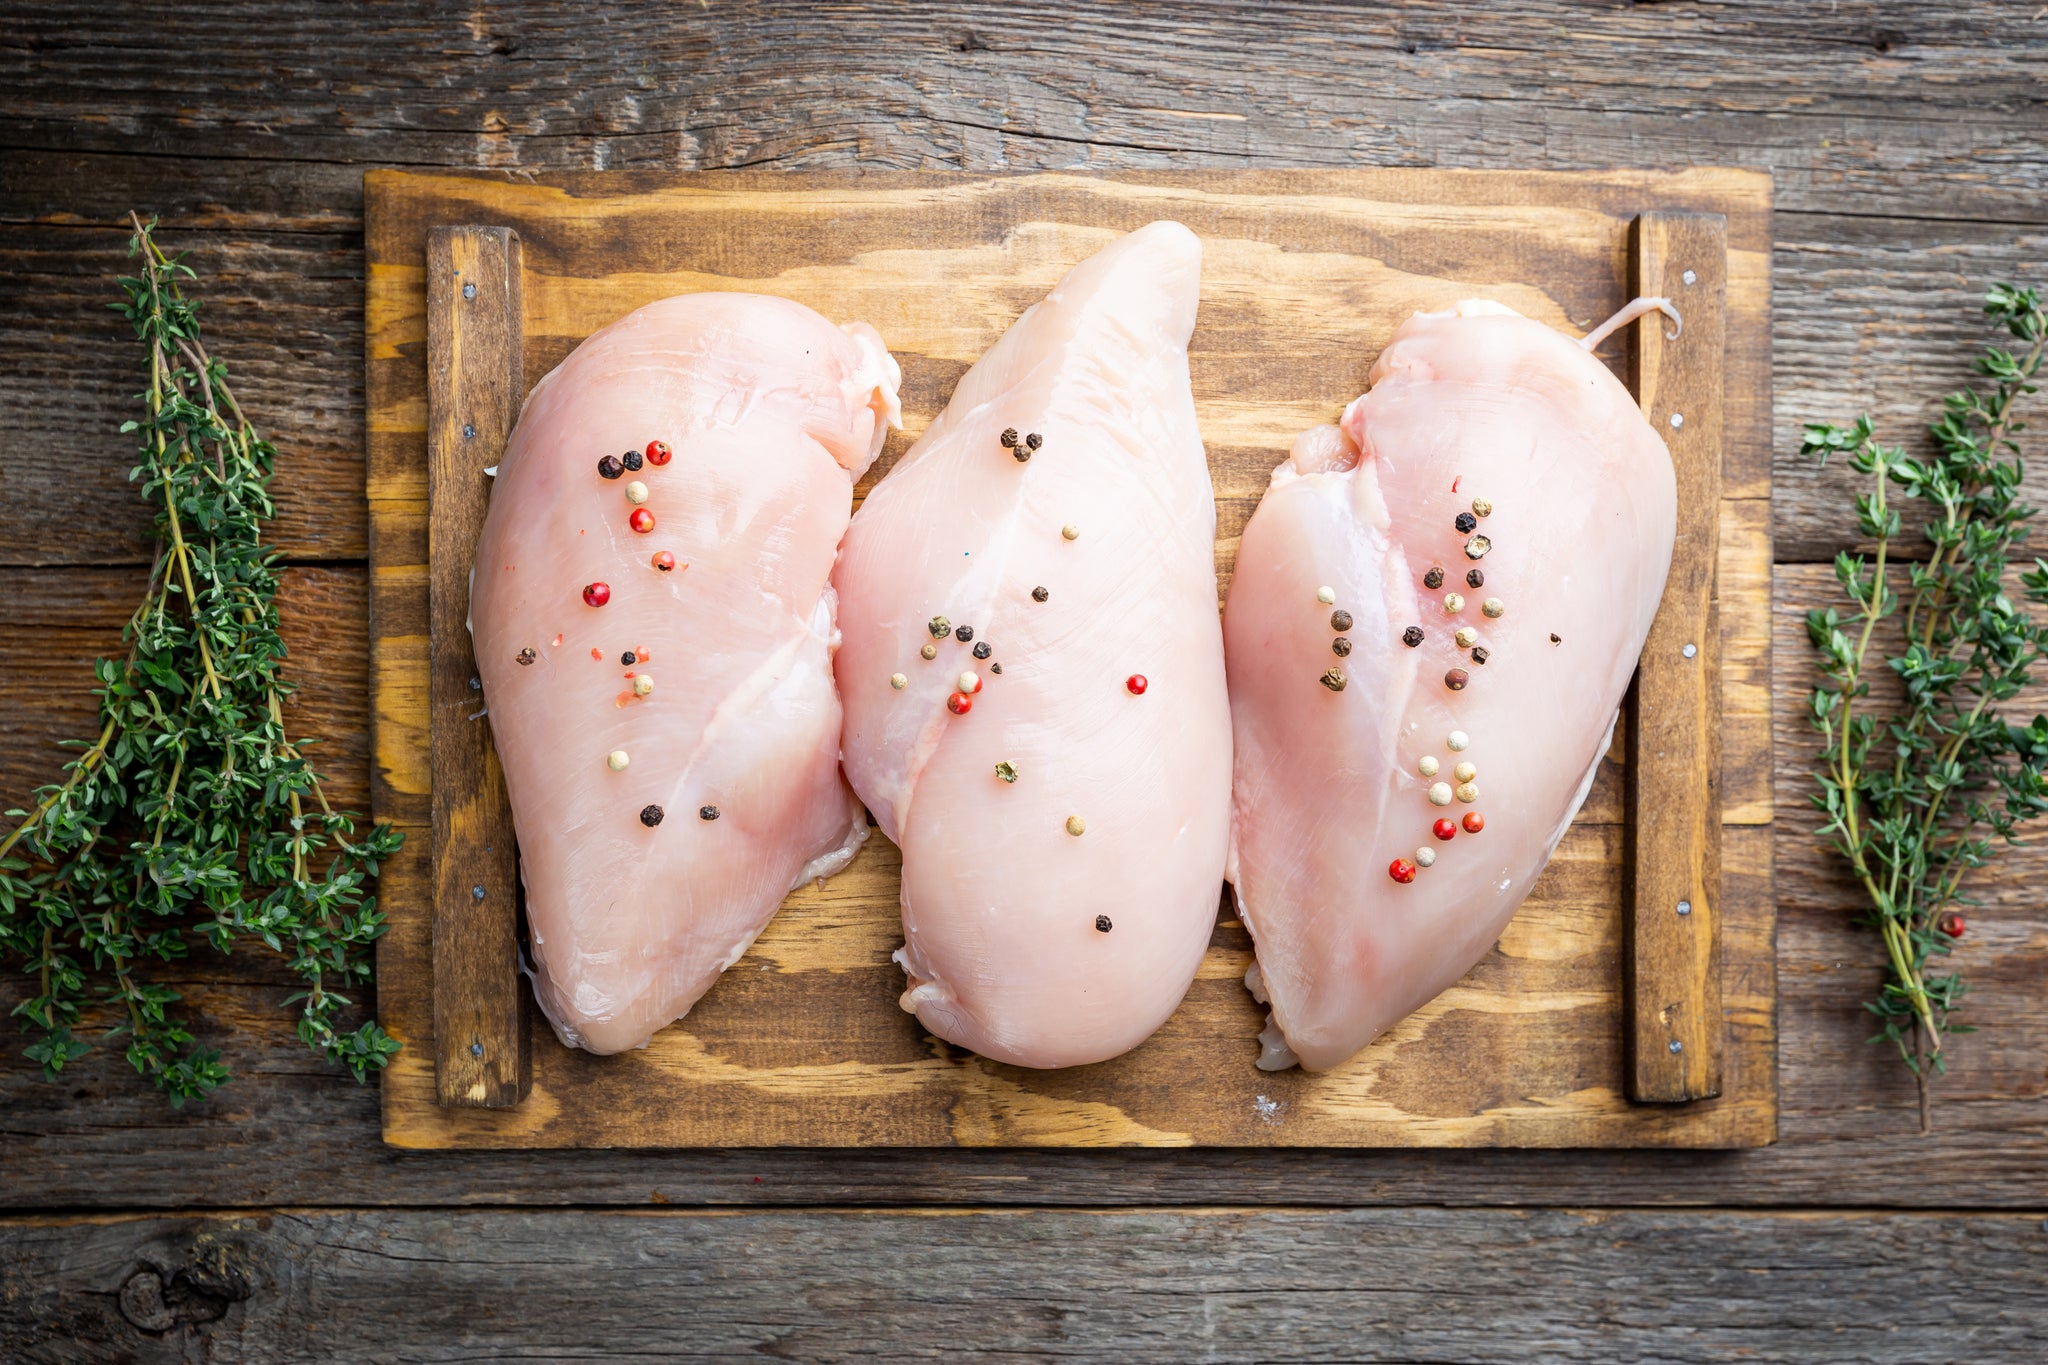 Butcher's Choice Boneless, Skinless Chicken Breast, 10 LB Case, $2.49 per LB